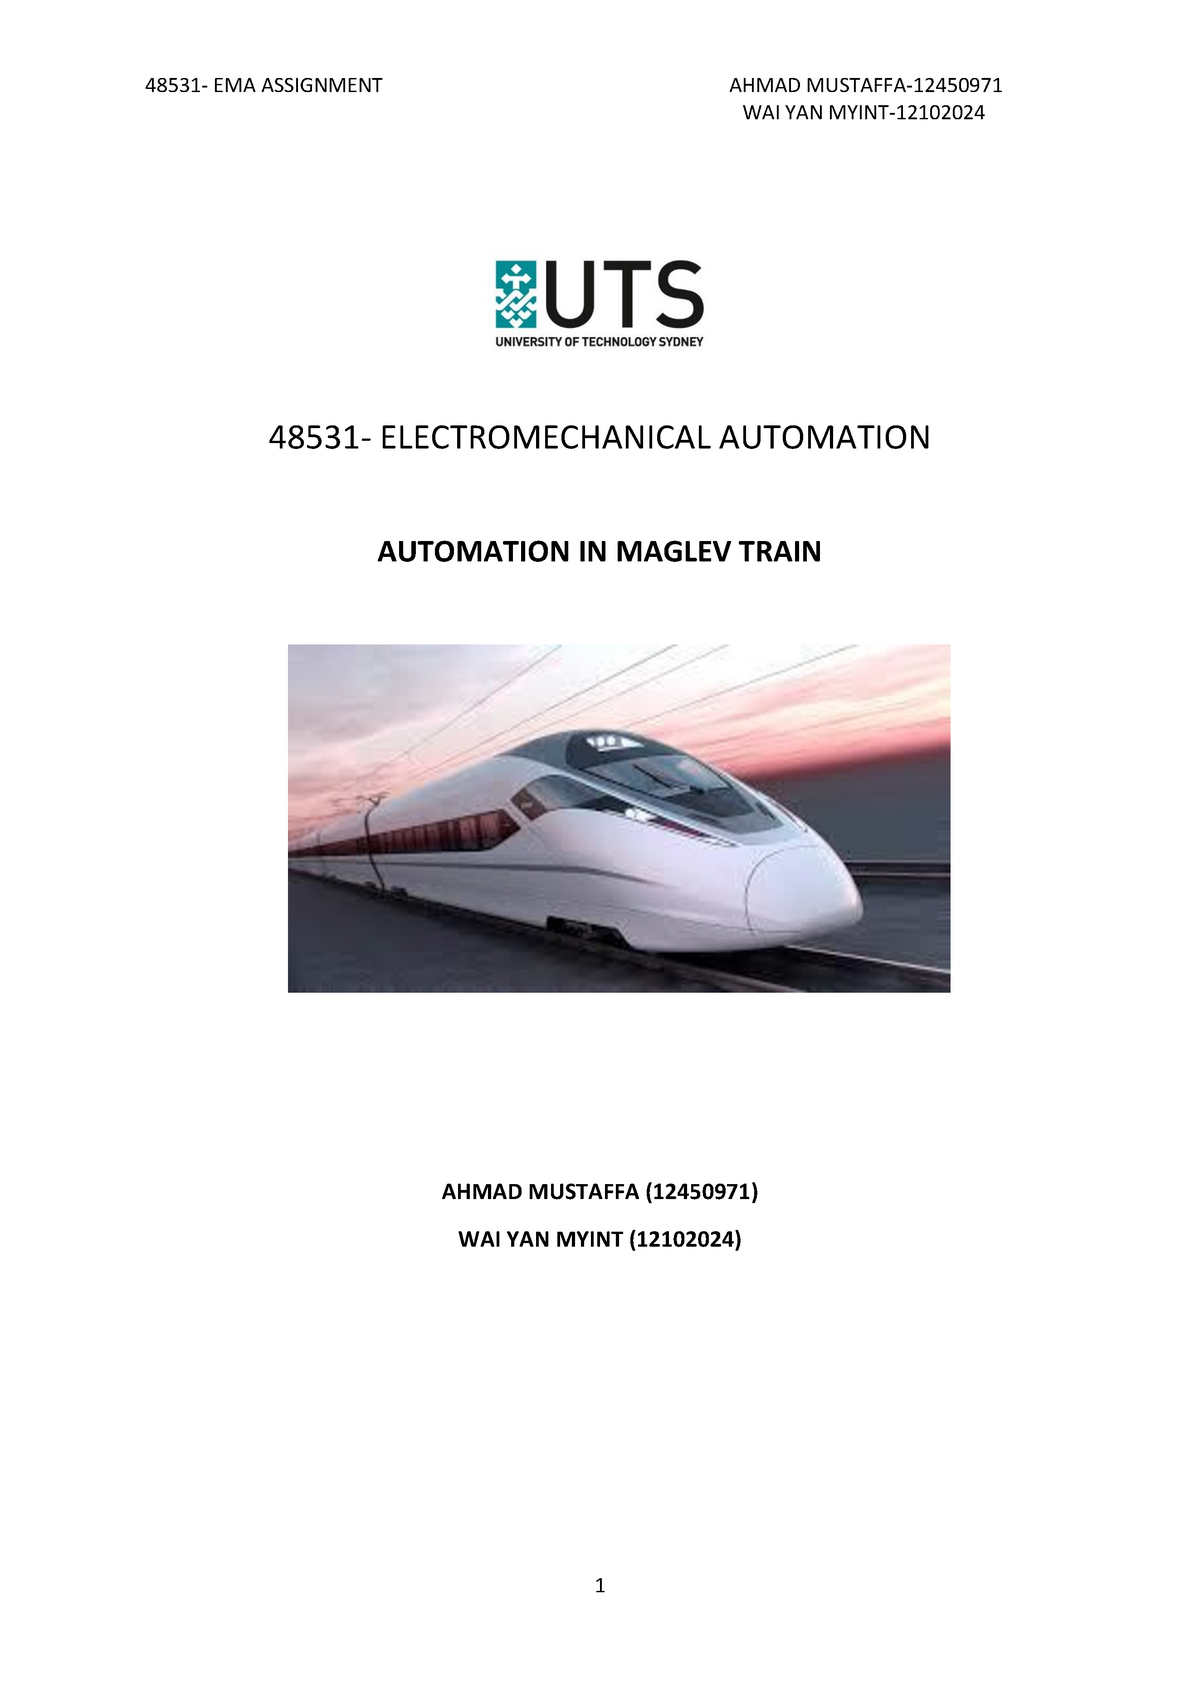 Assignment related to Automation in Maglev Train - 048531